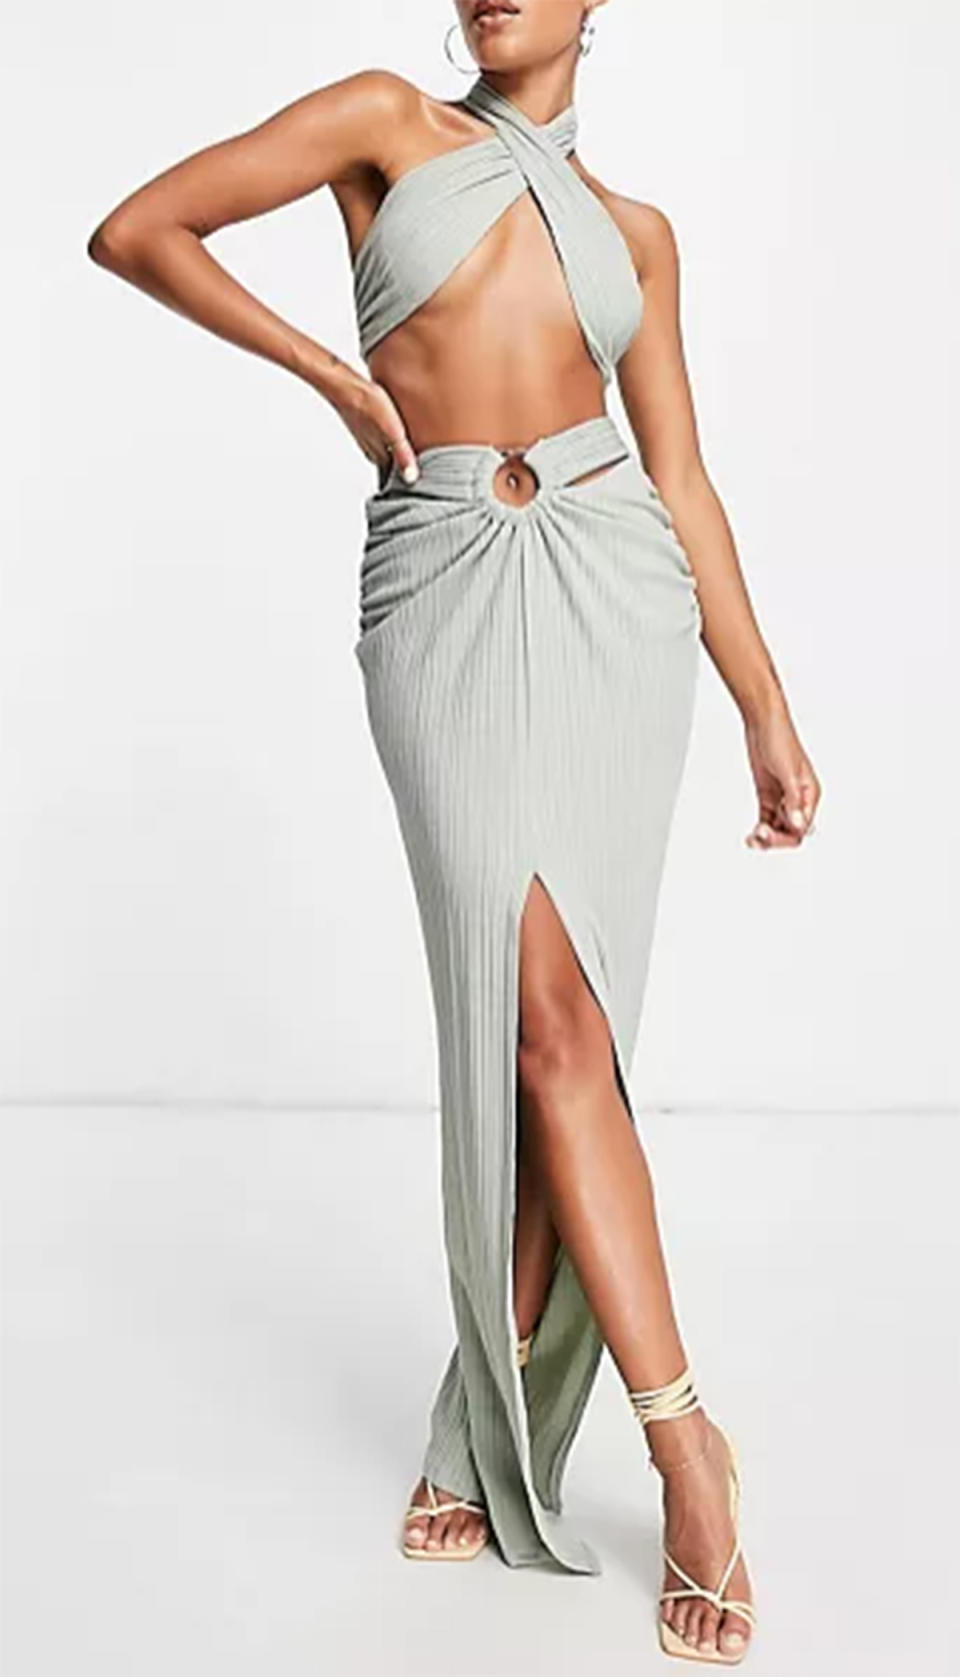 ASOS LUXE co-ord textured drape skirt with tortoiseshell ring in mint, $40